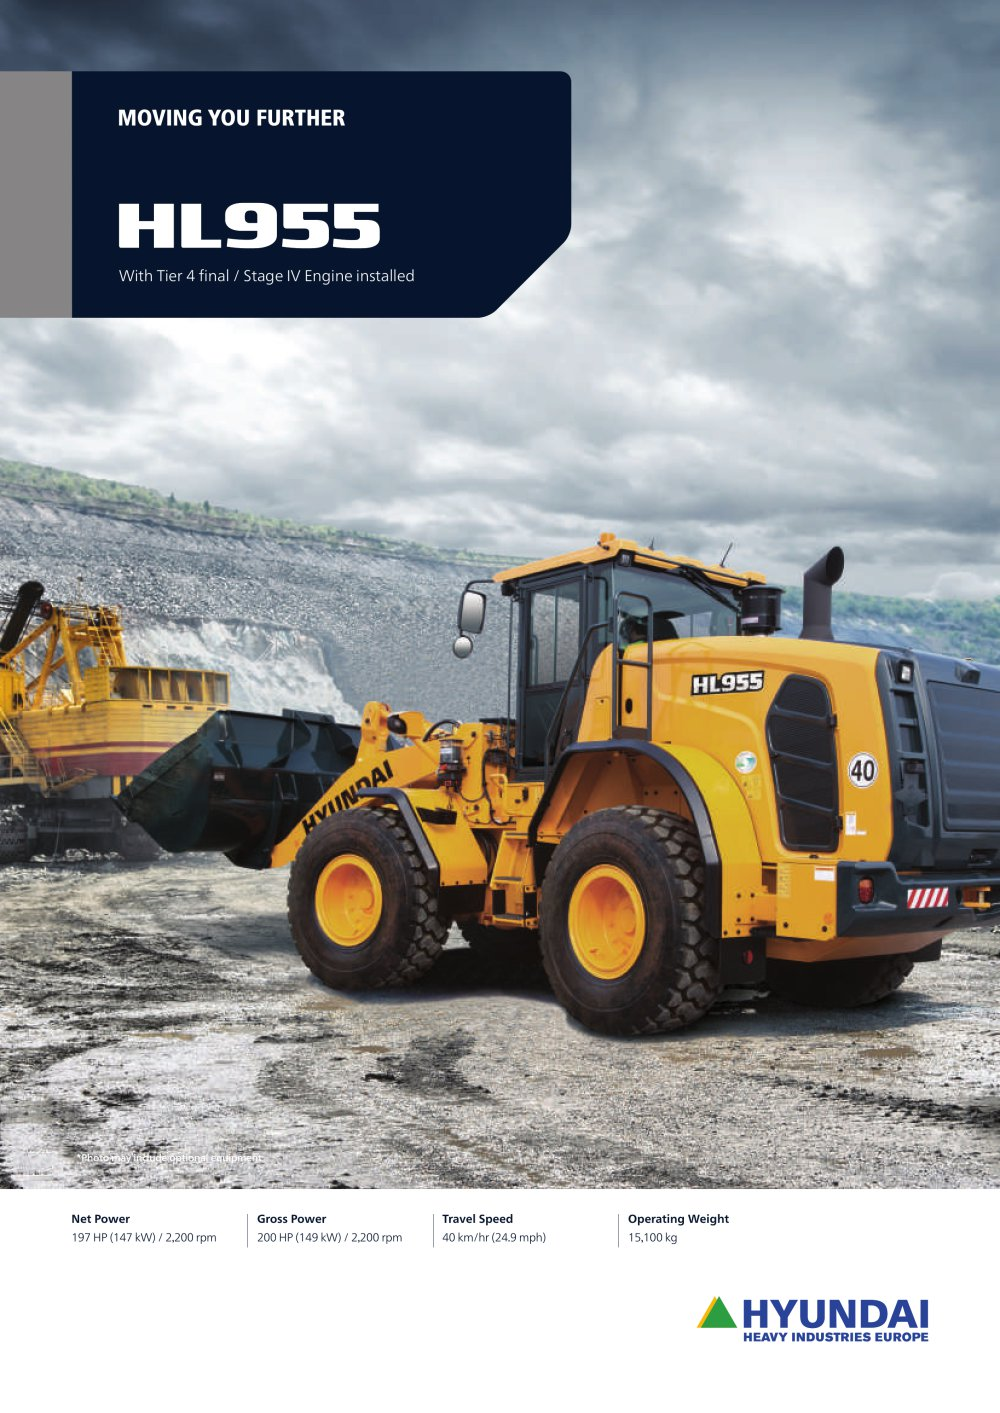 HL955 WHEEL LOADER - 1 / 16 Pages